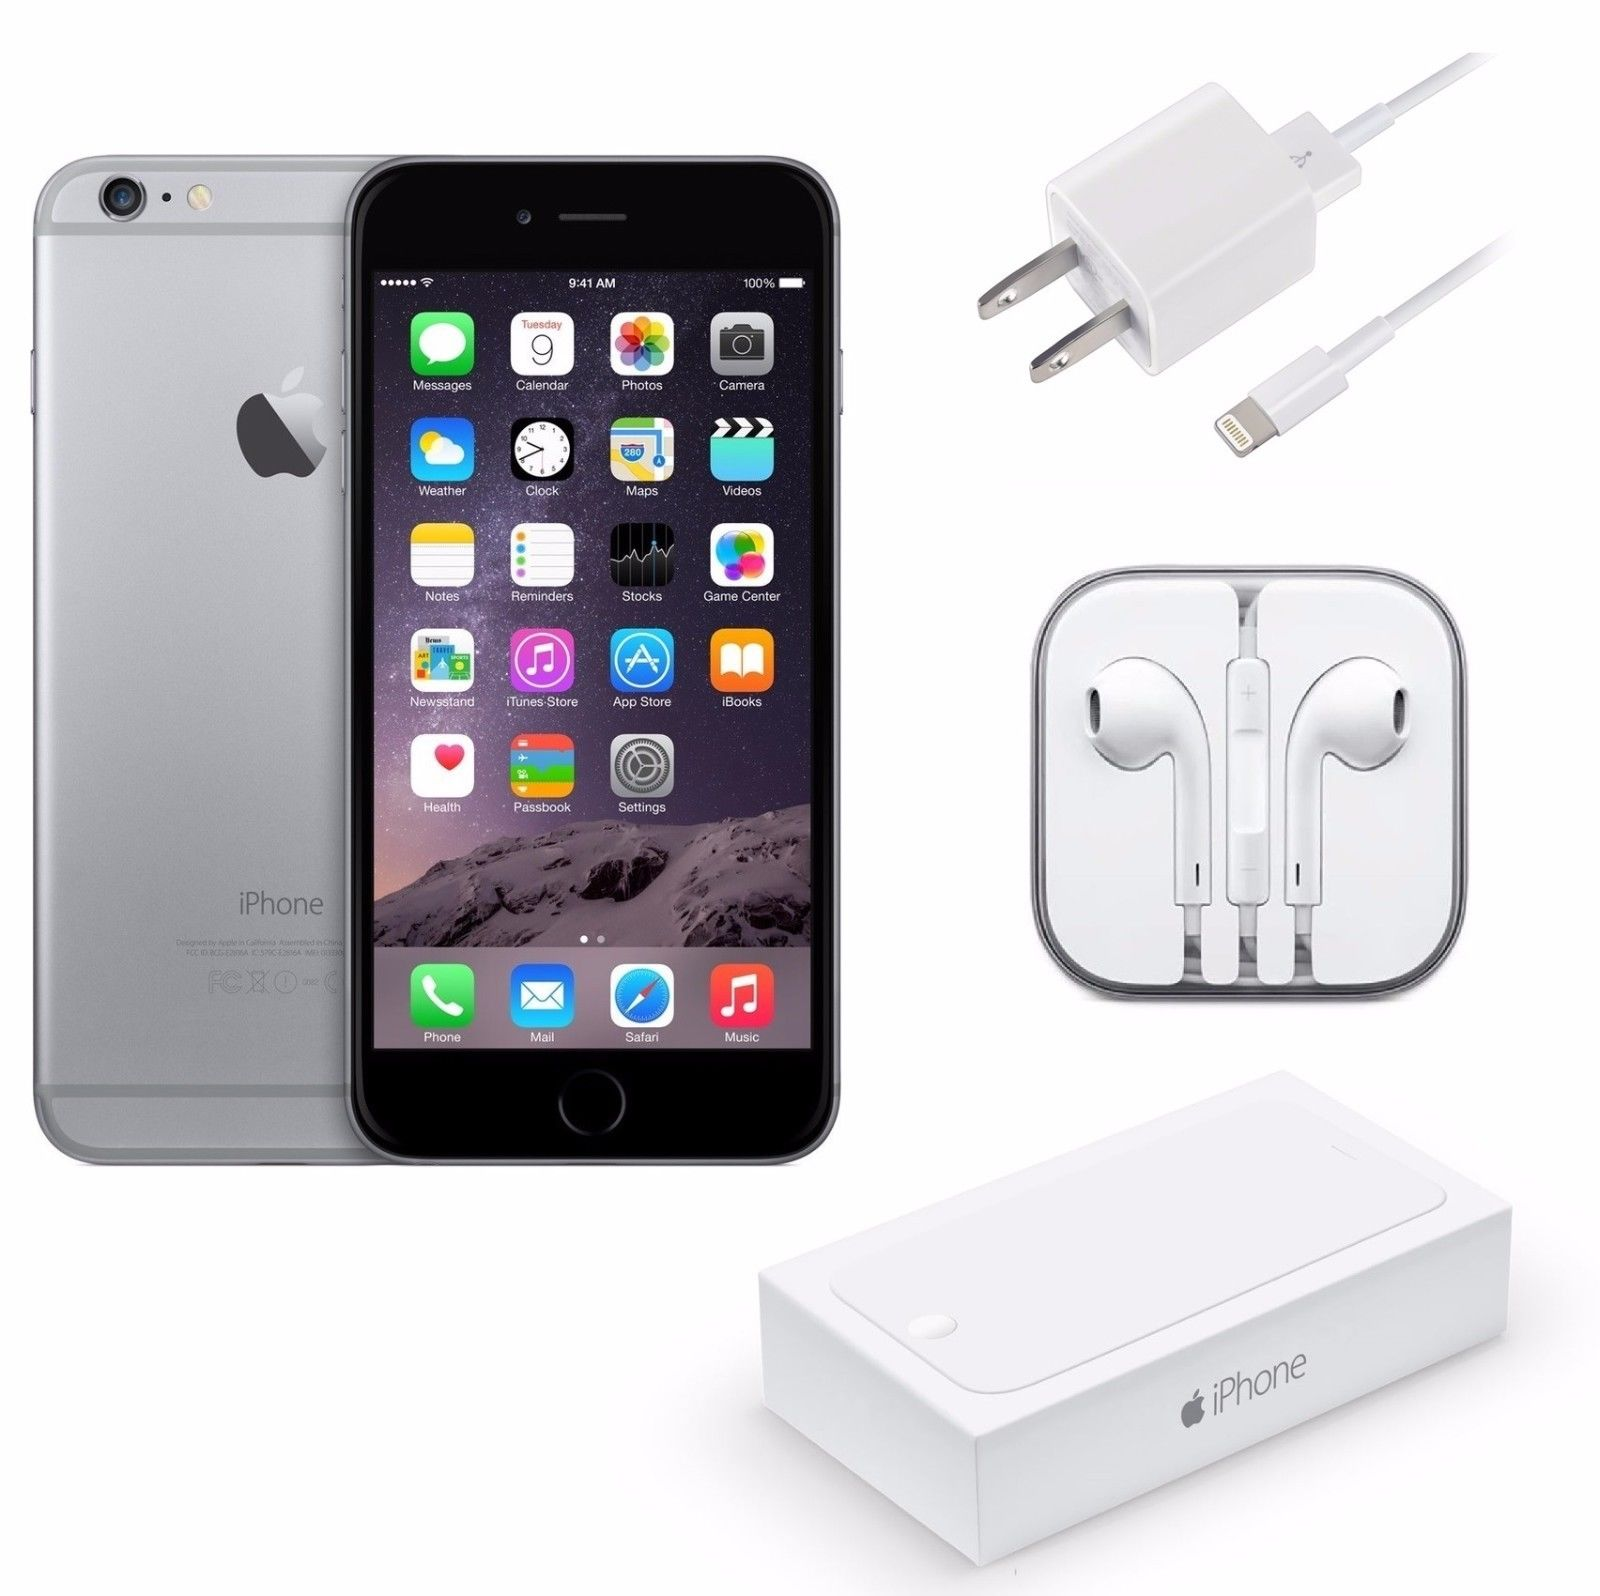 iphone 6 plus warranty tradeguide24 new original apple iphone 6 plus 64gb 6766